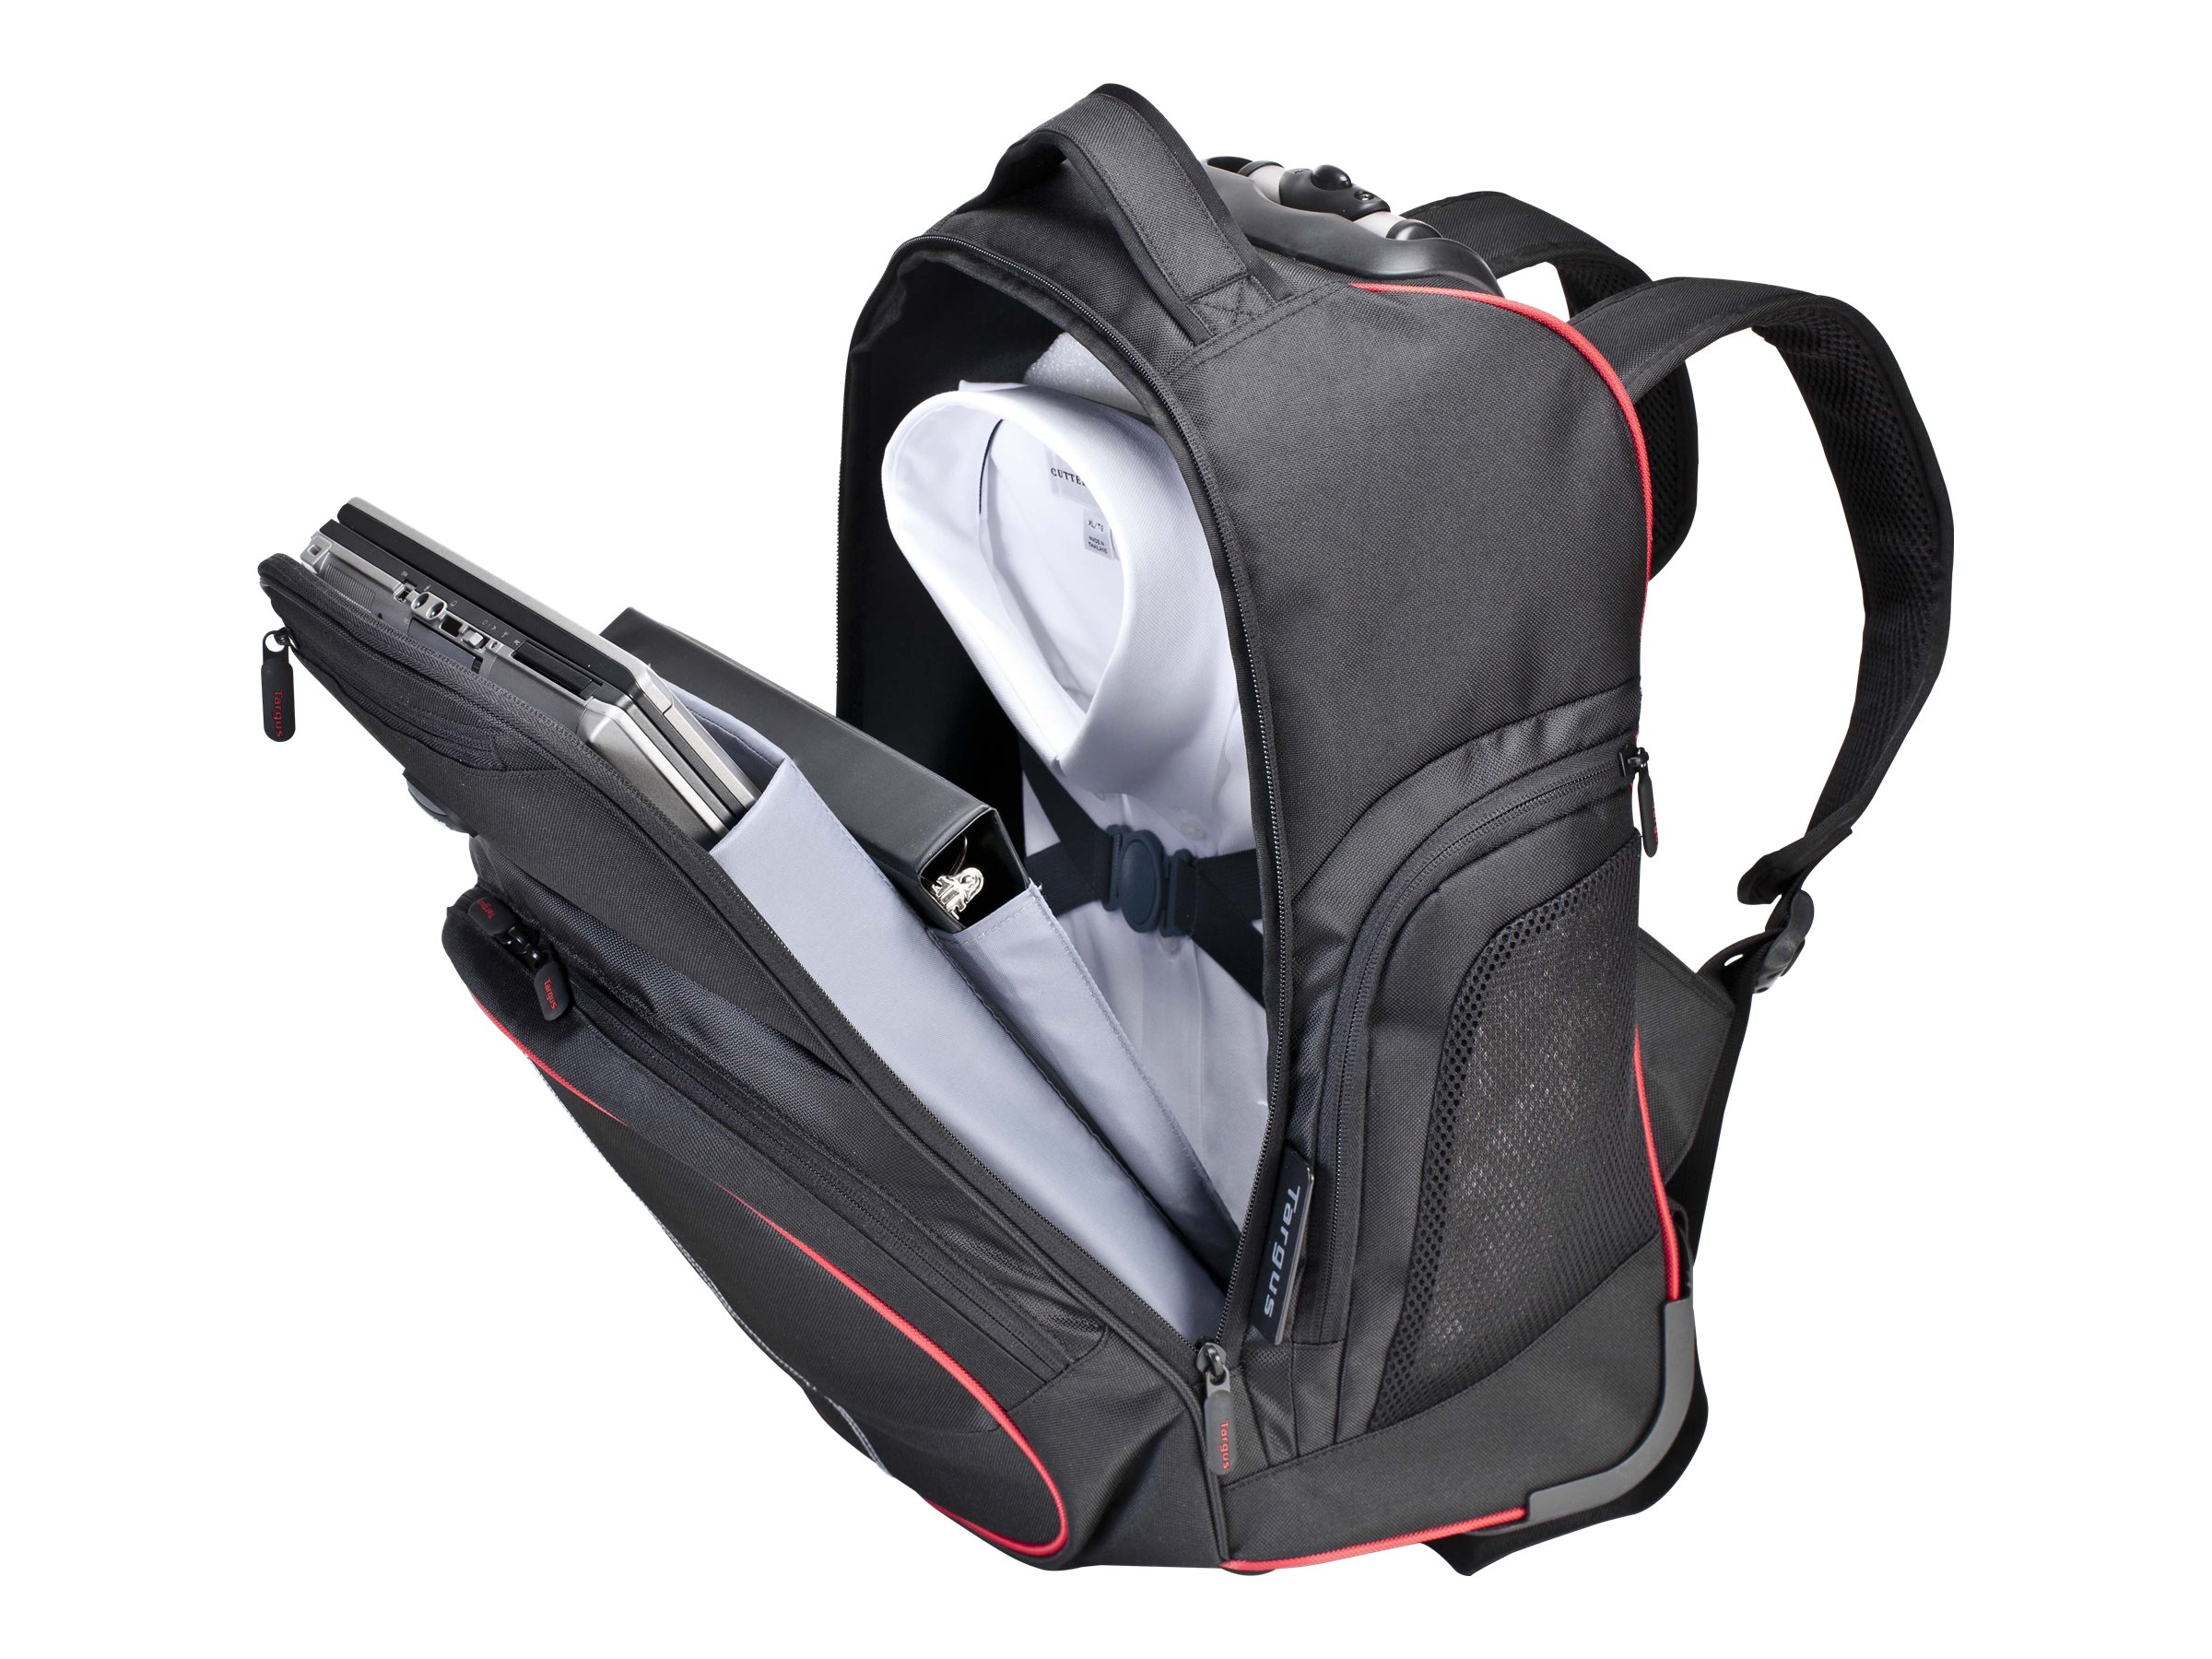 Targus 16 Compact Roller Backpack, Red Black